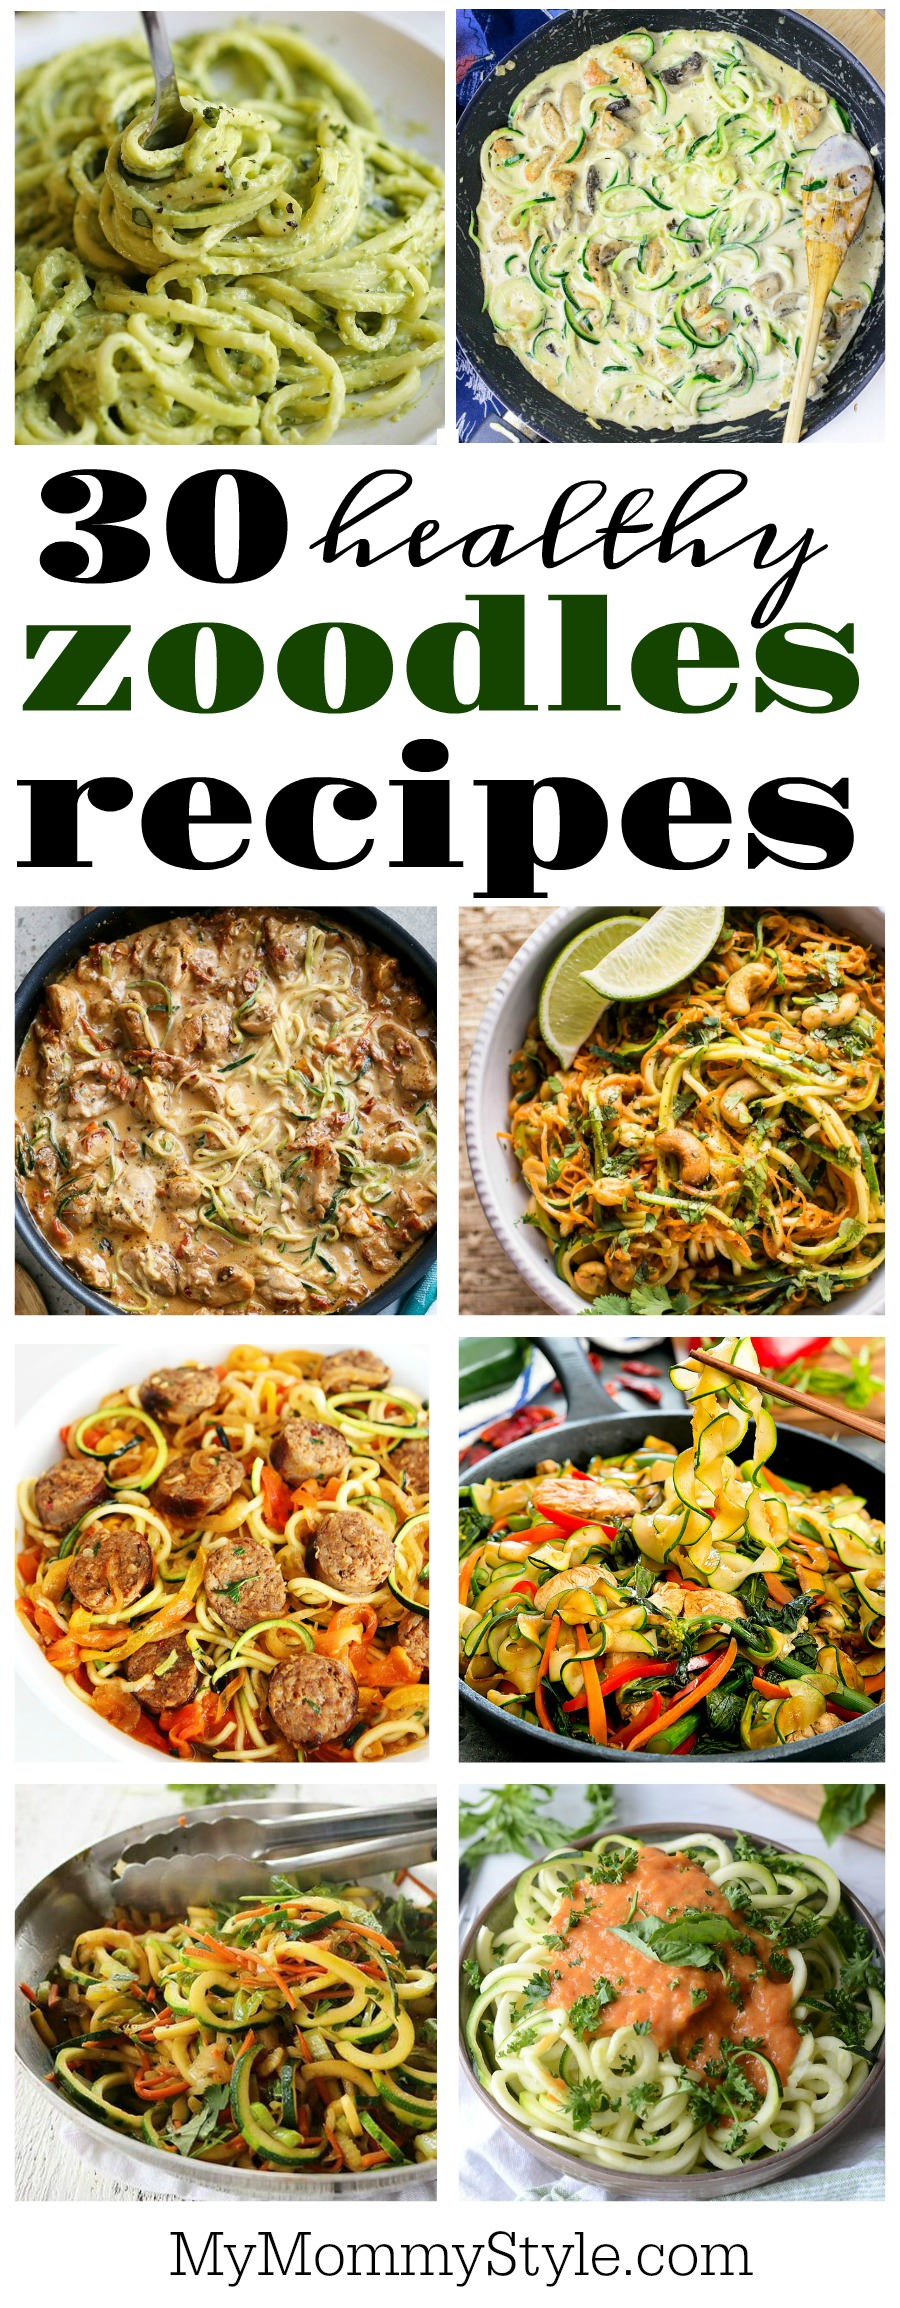 How to cook zoodles – 30 awesome recipes via @mymommystyle